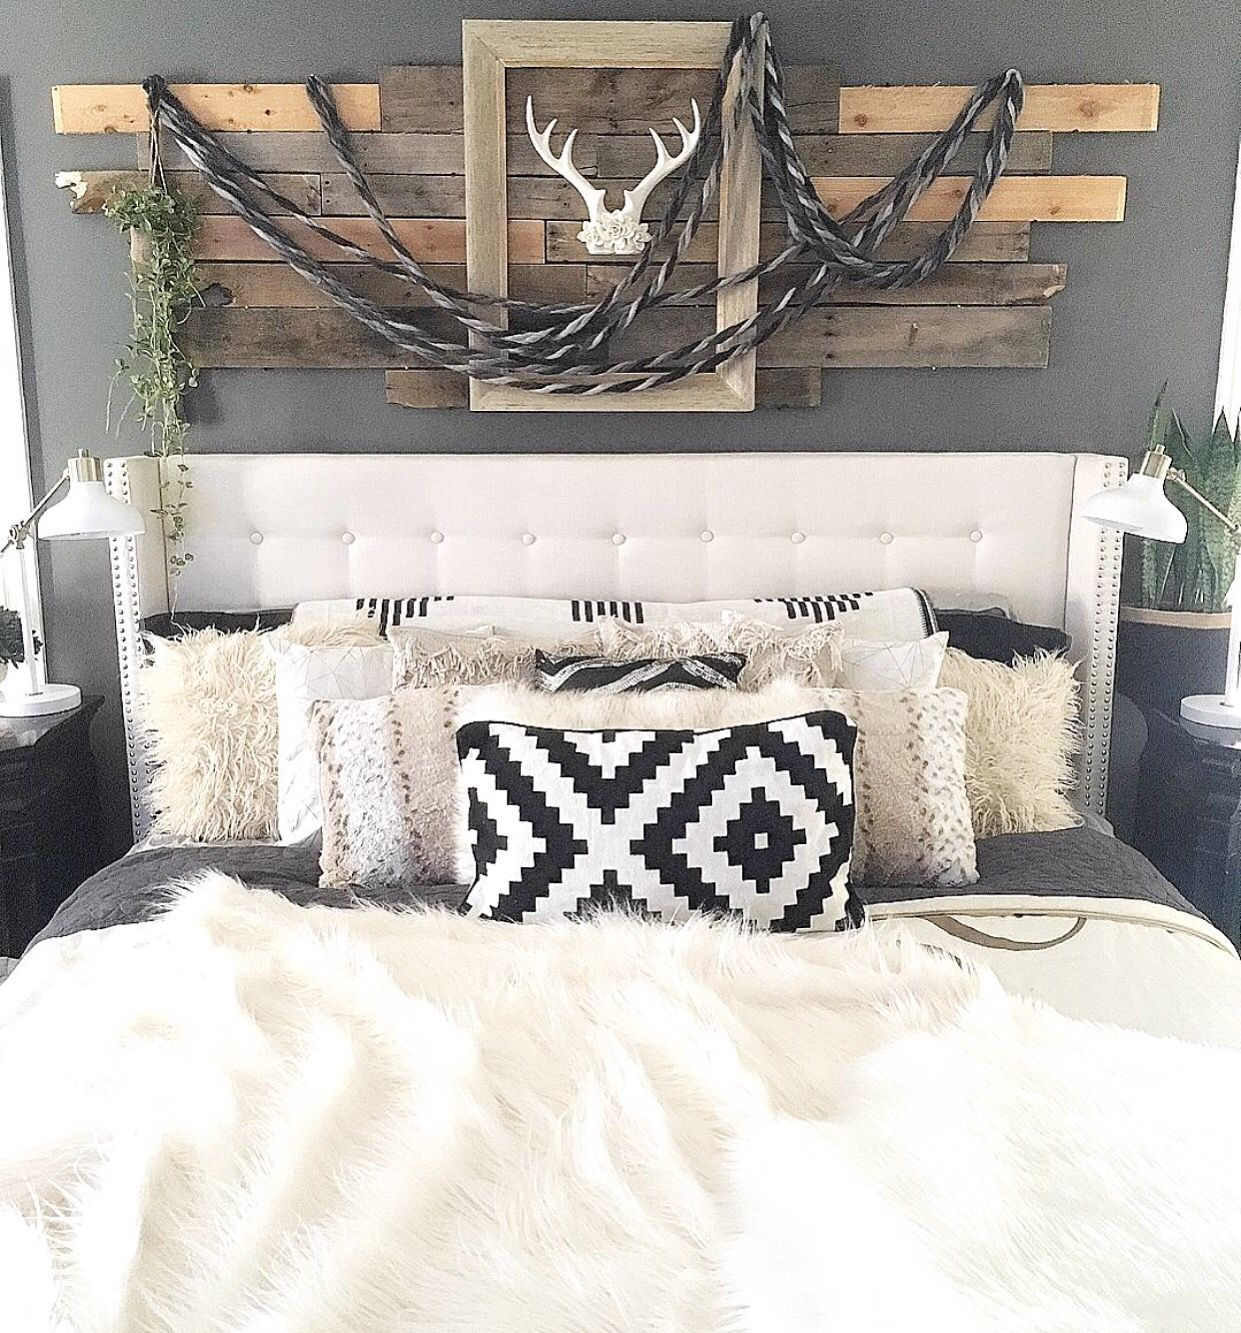 Rustic Boho Chic Master Bedroom By Blissfully Eclectic Chic